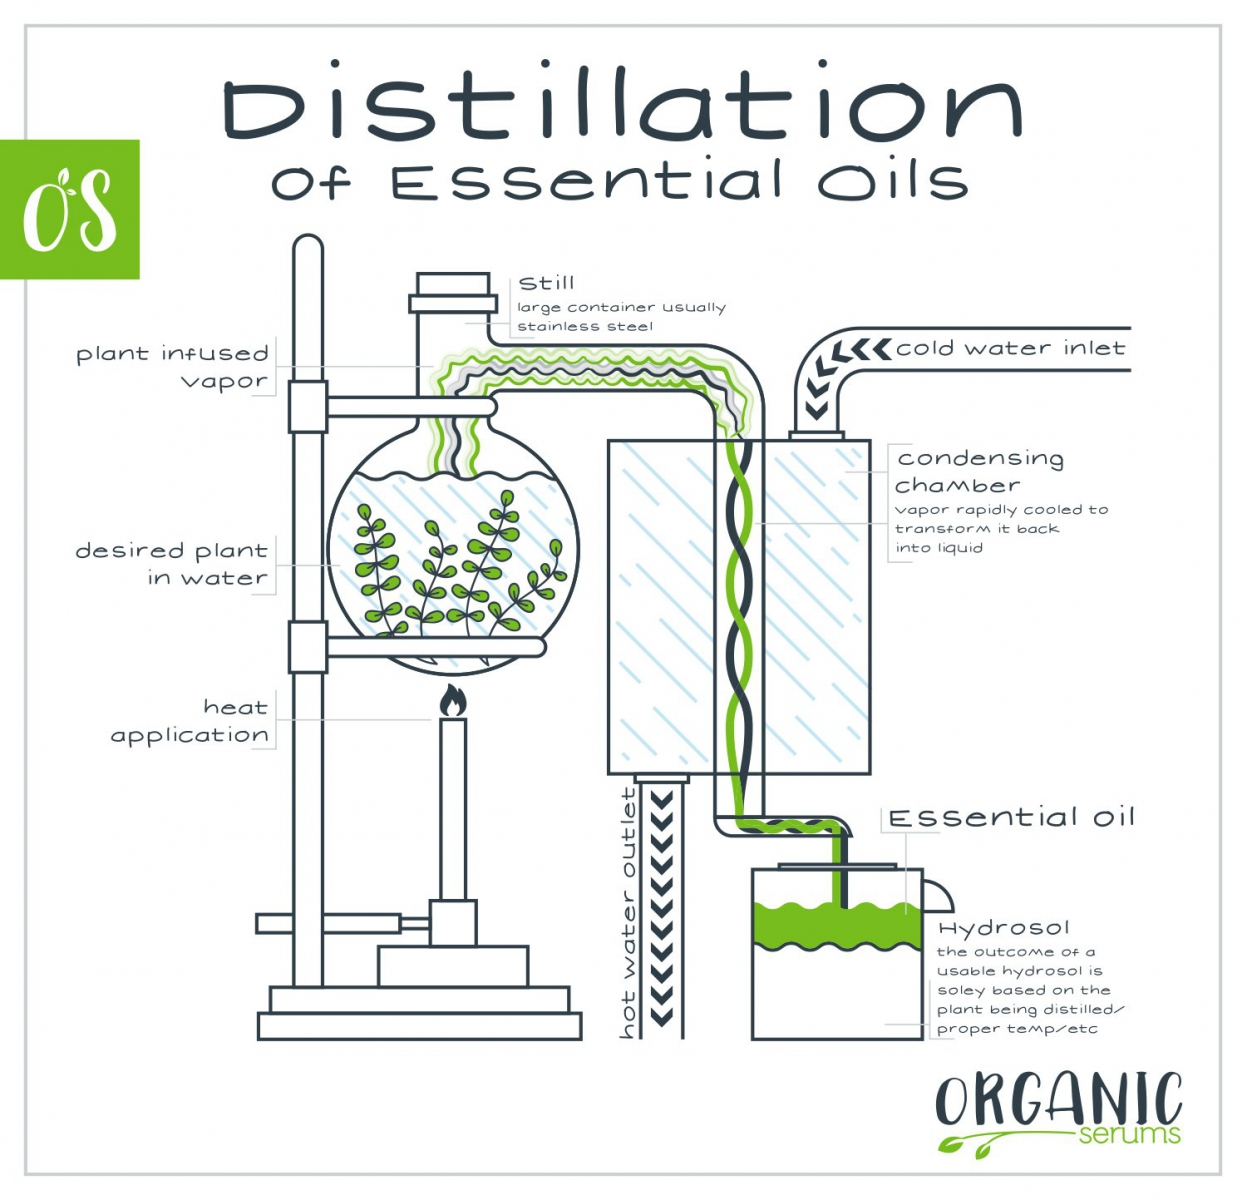 http://sunscent.vn/files/editor/images/distillation-graphic.jpg